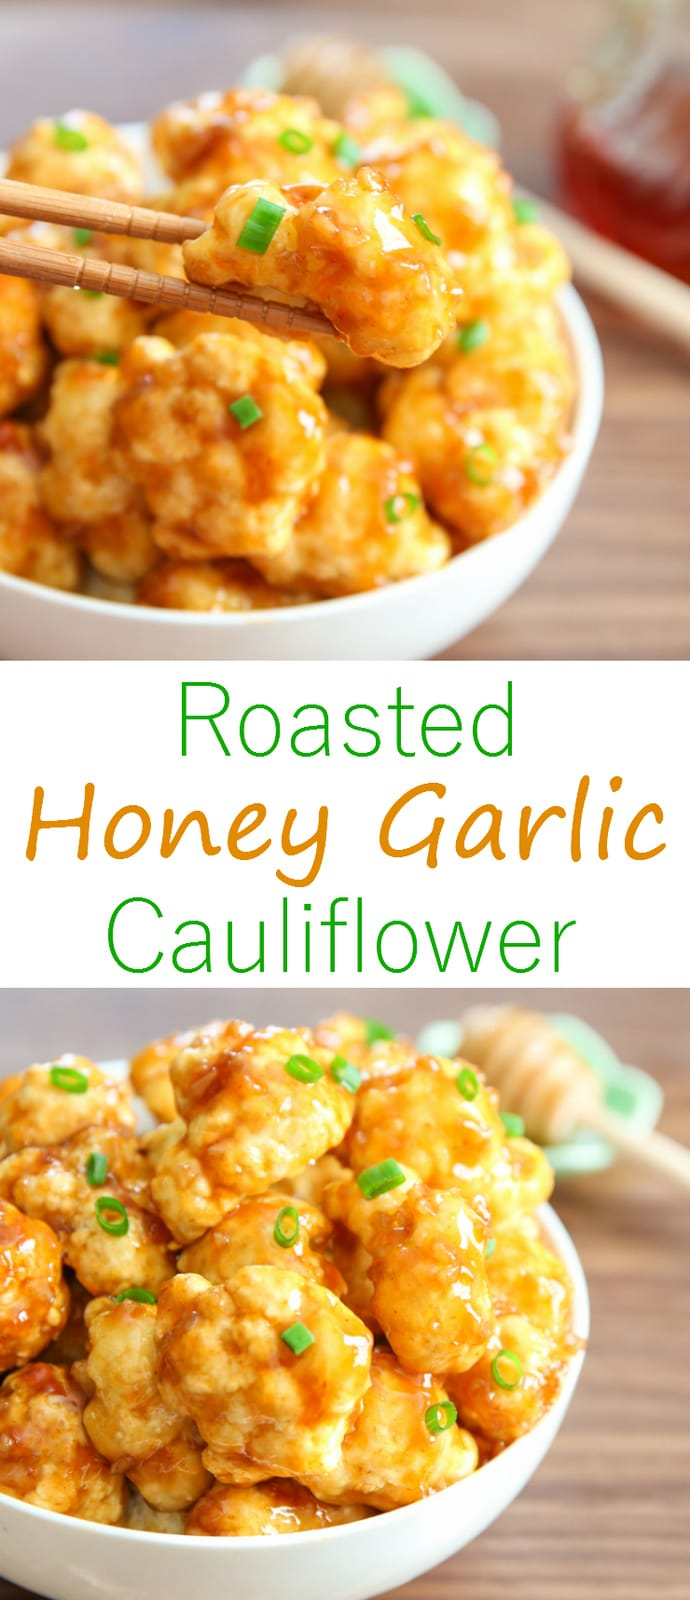 Roasted Honey Garlic Cauliflower. Roasted cauliflower is coated with an addictive sweet and savory honey garlic sauce.